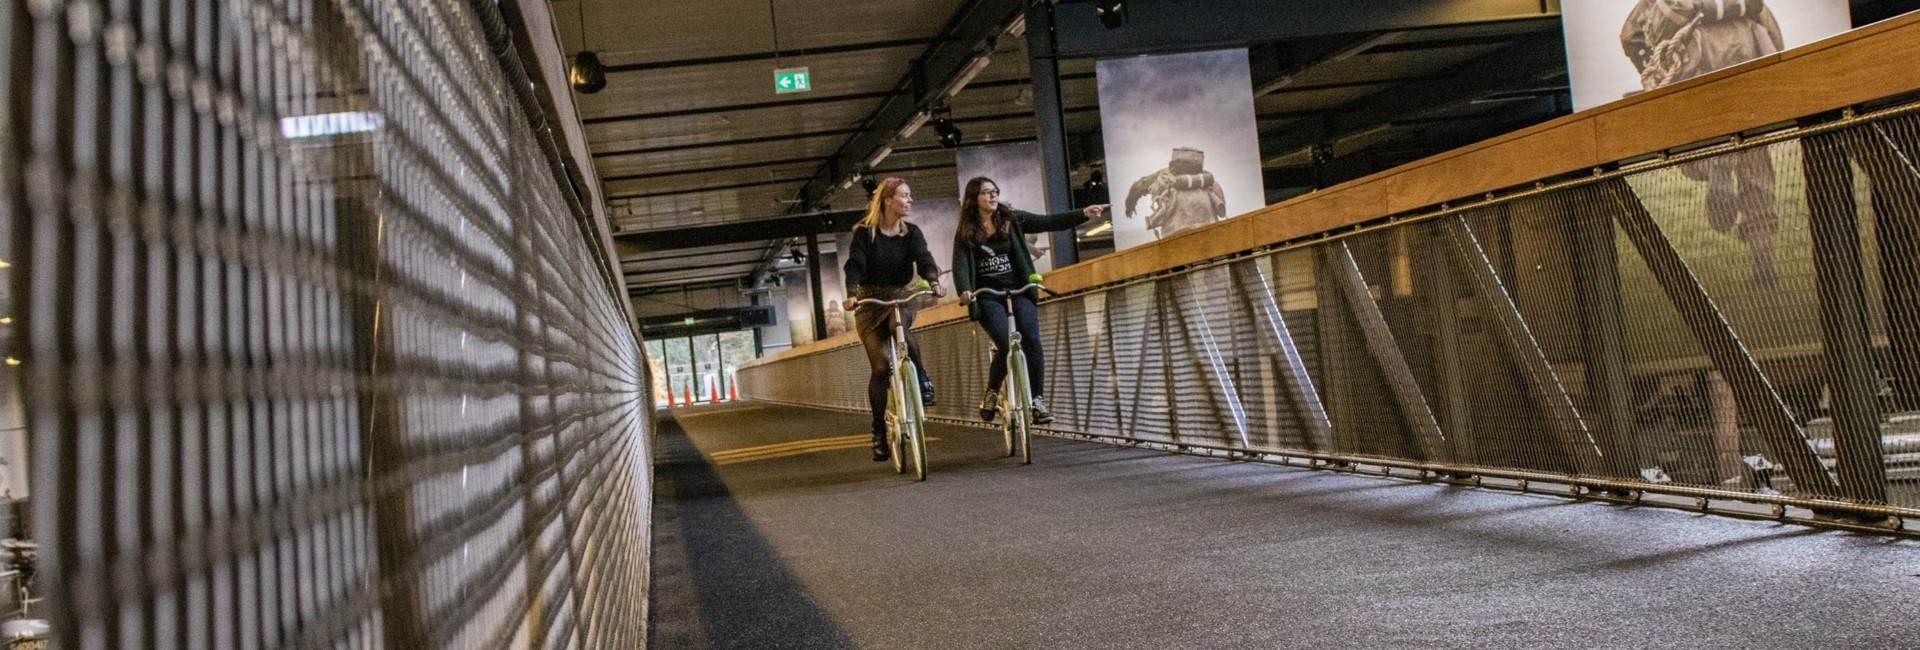 oorlogsmuseum - Bicycle Bridge